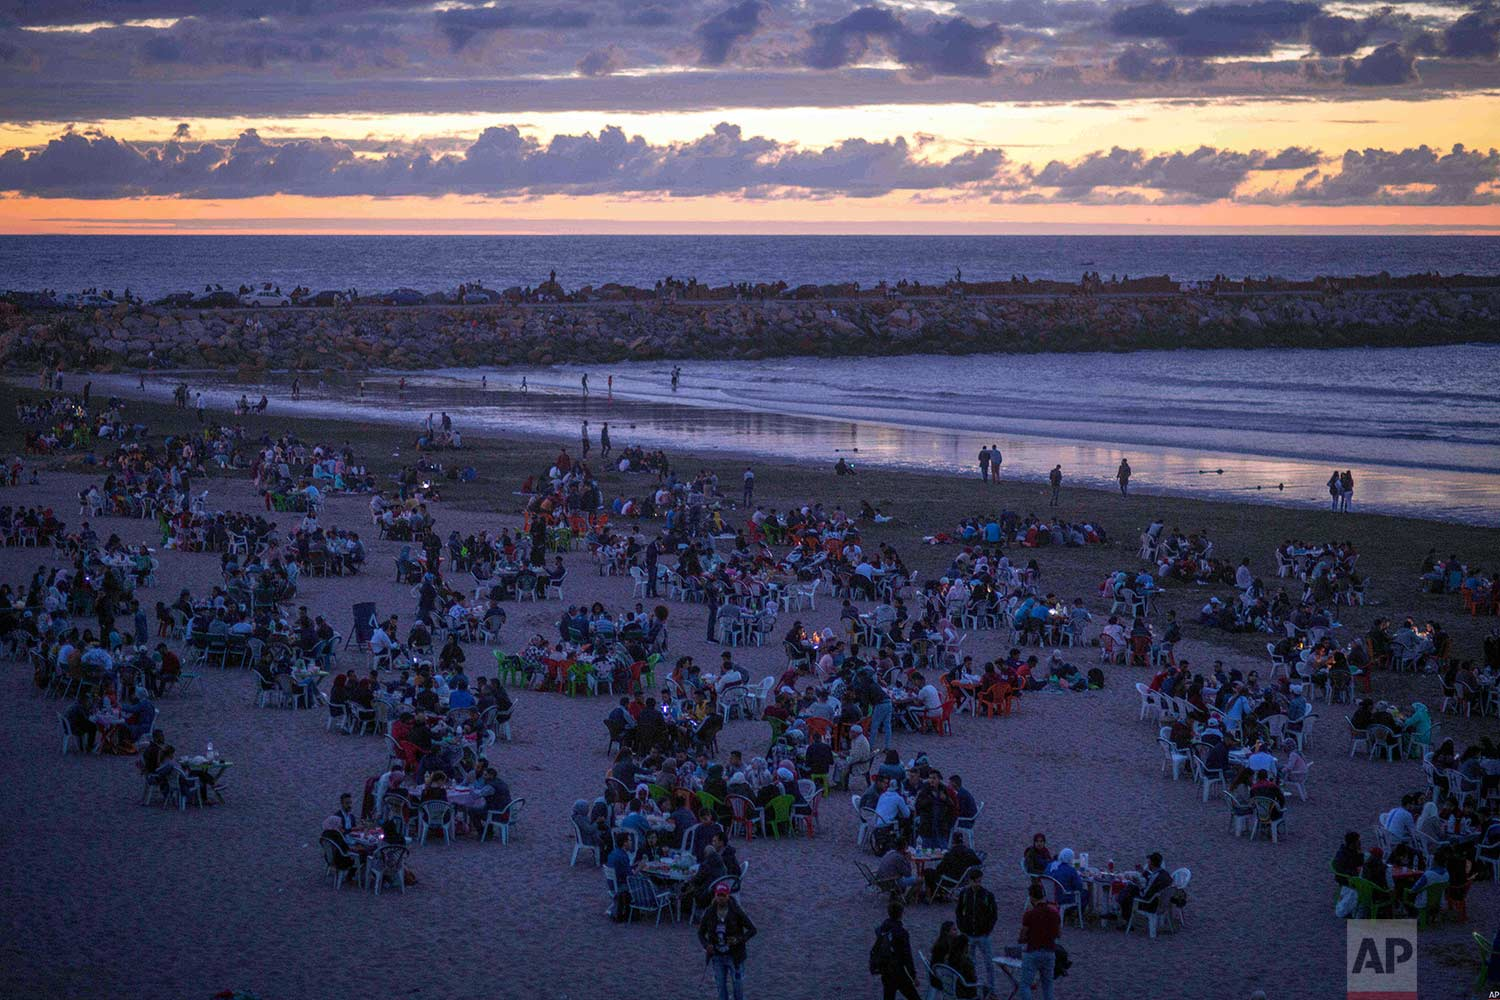 Friends and families gather to break their fast on the beach in the holy month of Ramadan, Rabat, Morocco, Saturday, June 9, 2018. (AP Photo/Mosa'ab Elshamy)